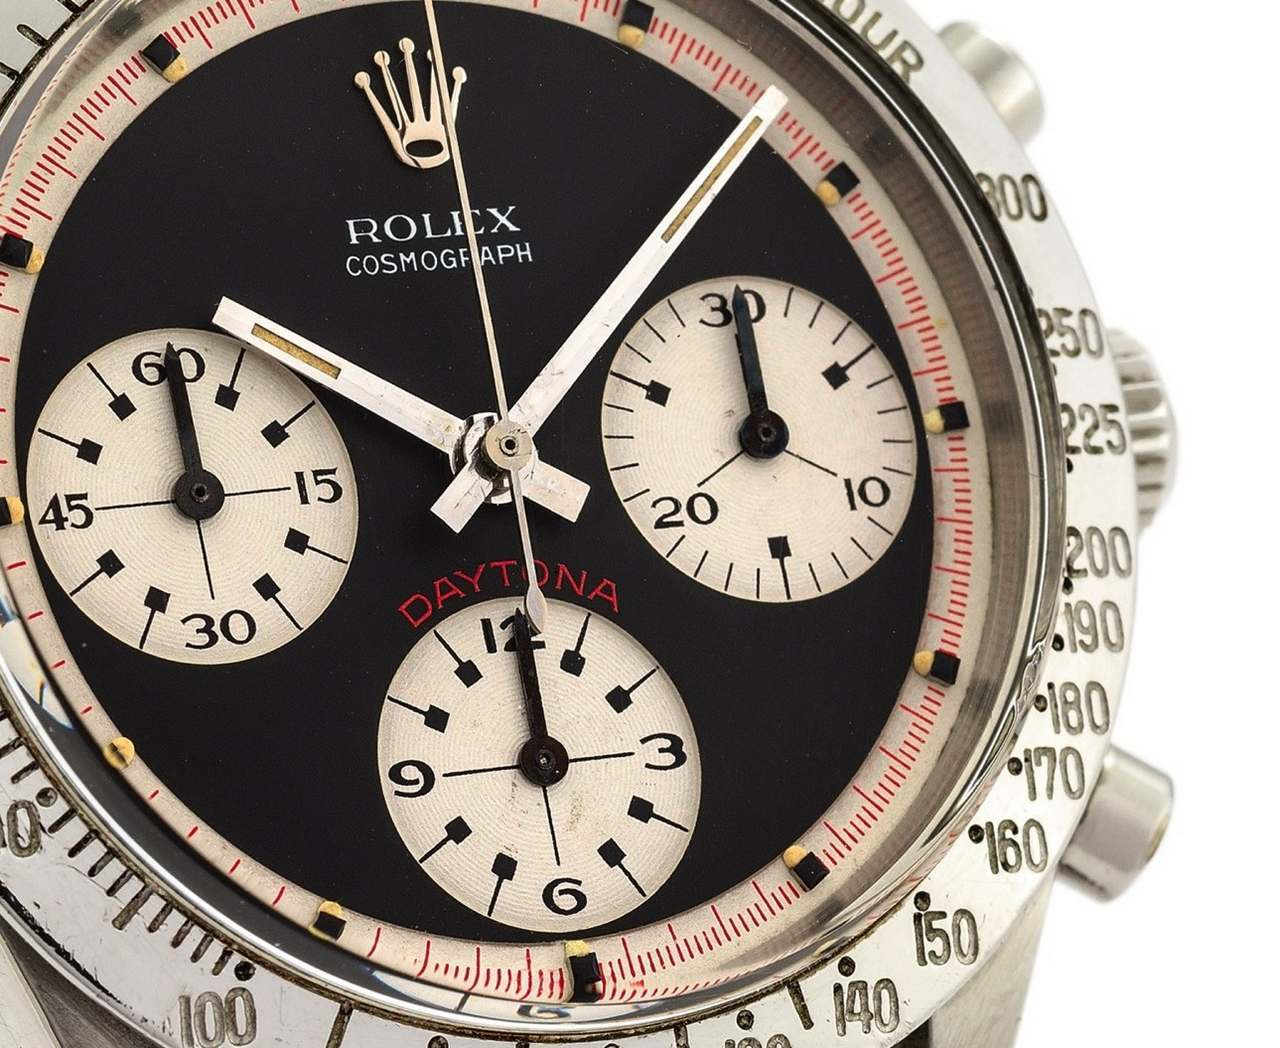 ROLEX REF. 6239 PAUL NEWMAN BLACK DIAL STEEL Rolex, Cosmograph Daytona,No. 1695116, Ref. 6239-source_antiquorum_1